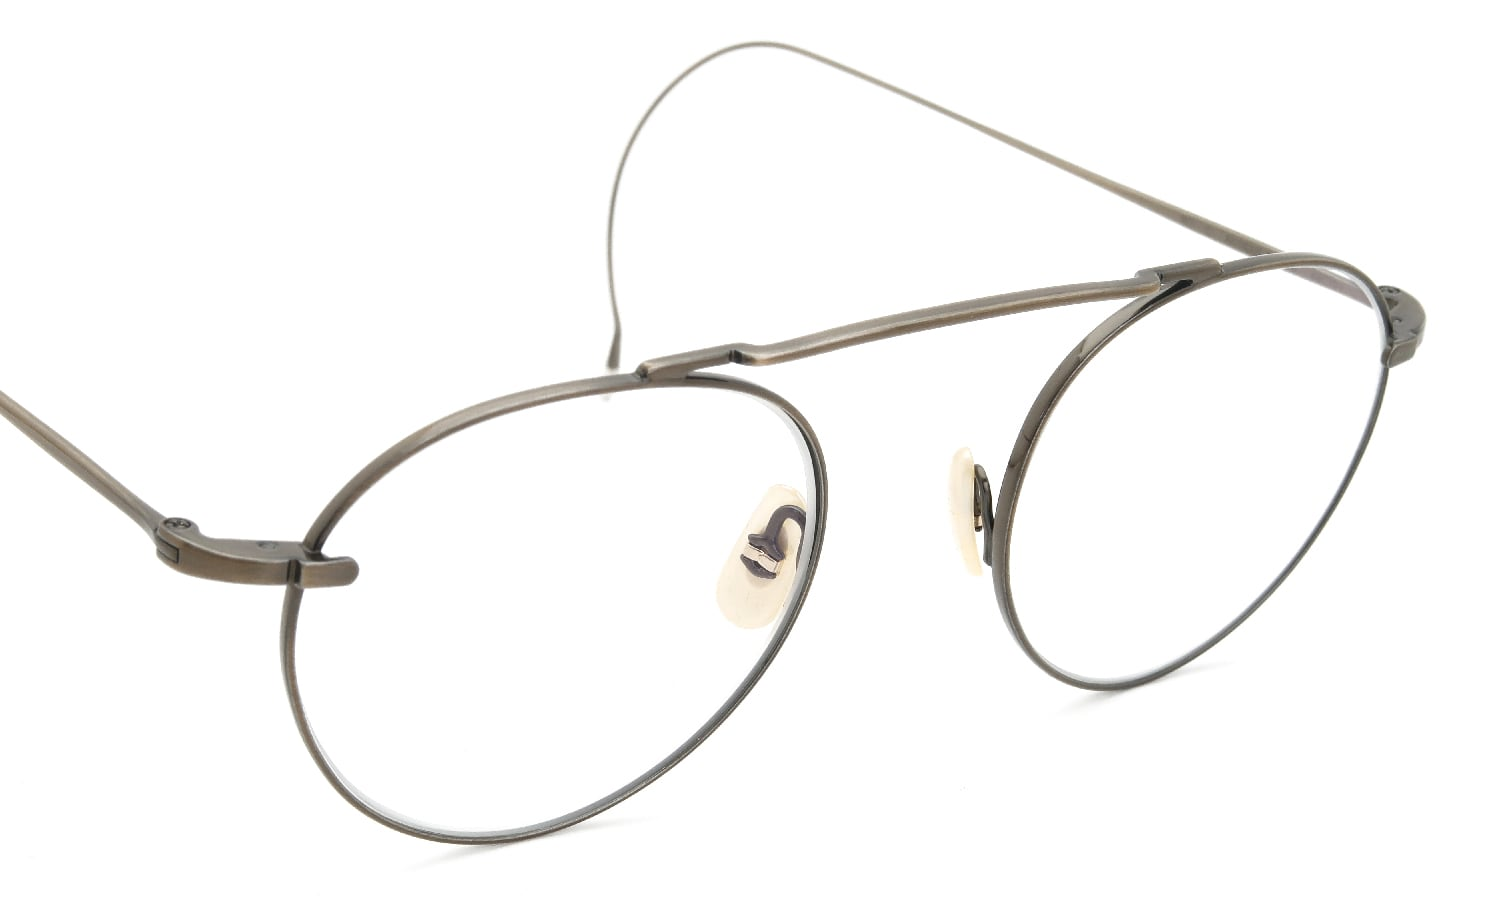 Mr.Leight REI C ANTIQUE-GOLD 48size